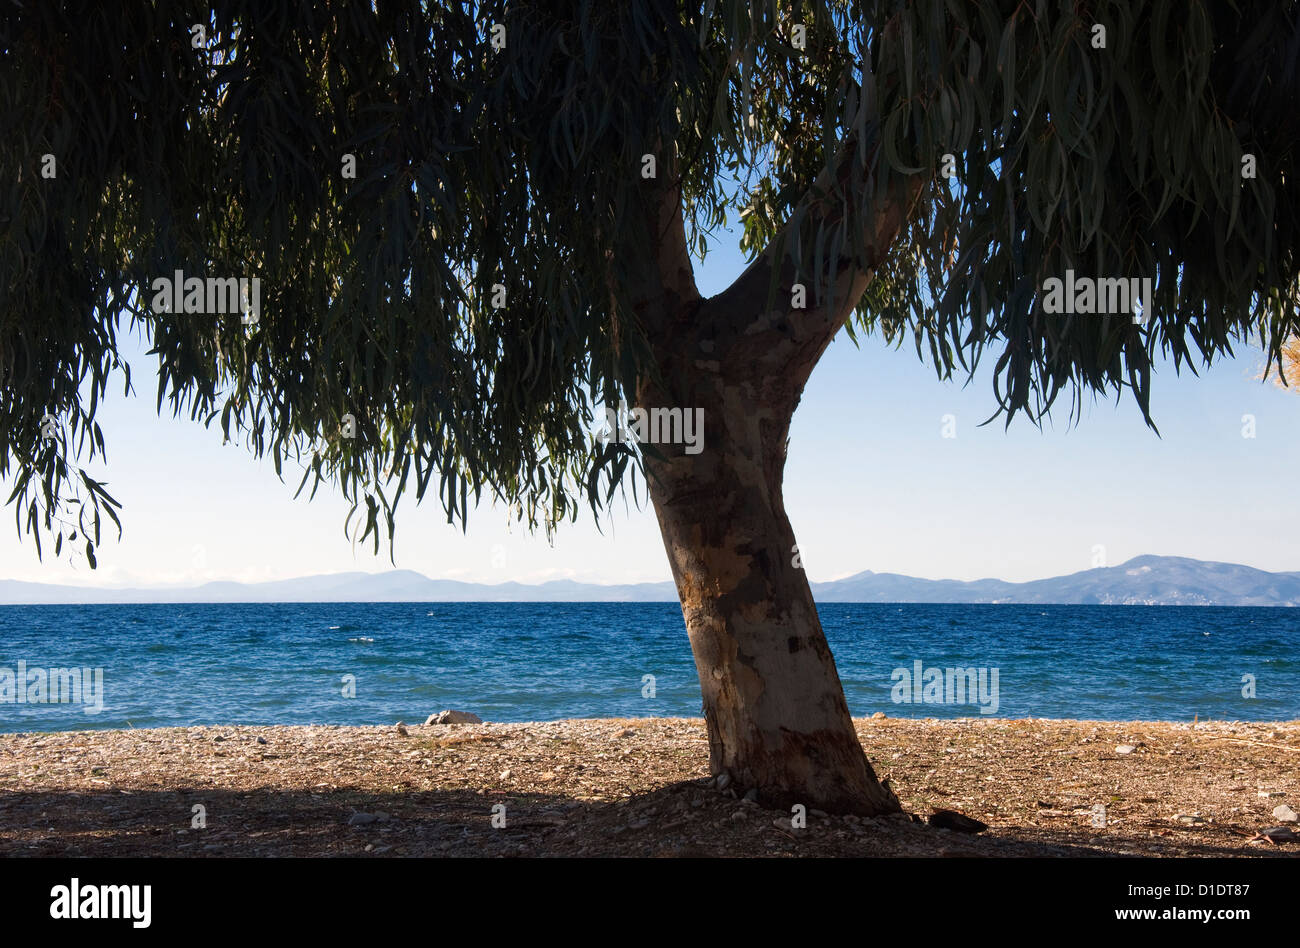 Eucalyptus tree on a beach at the Pagasitic Gulf (Pelion Peninsula, Thessaly, Greece) - Stock Image